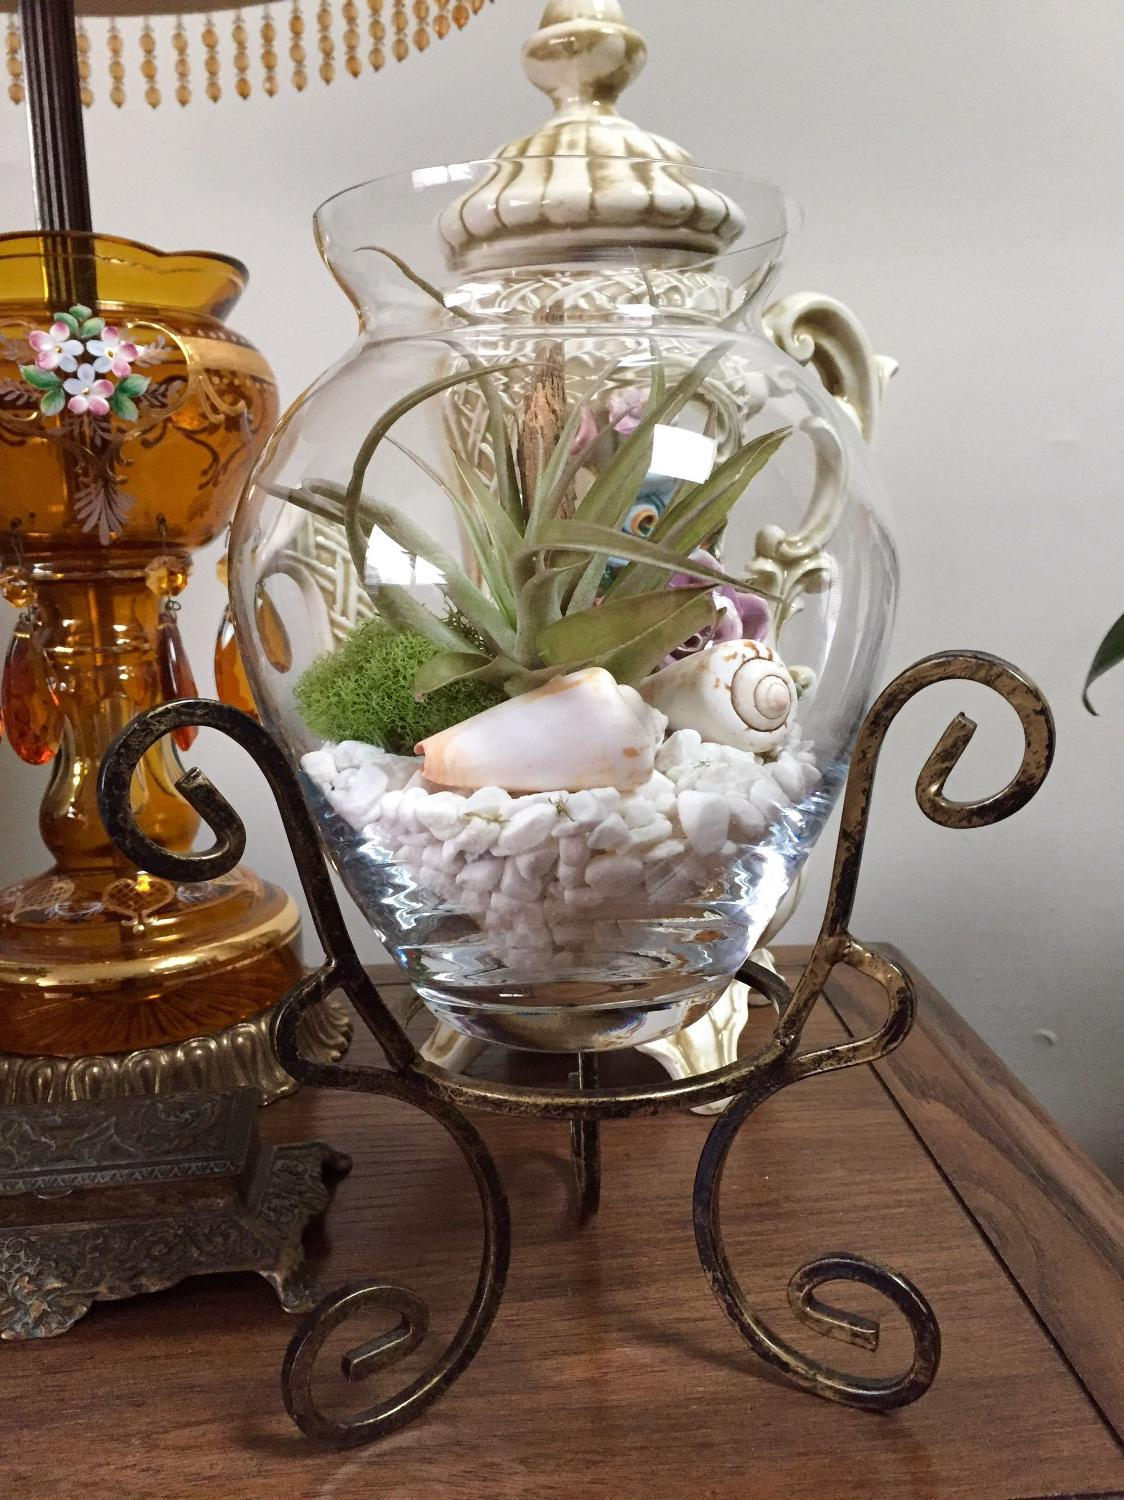 Find More Large Air Plant In A Clear Glass Vase Embedded With White Rocks Moss Drift Wood And